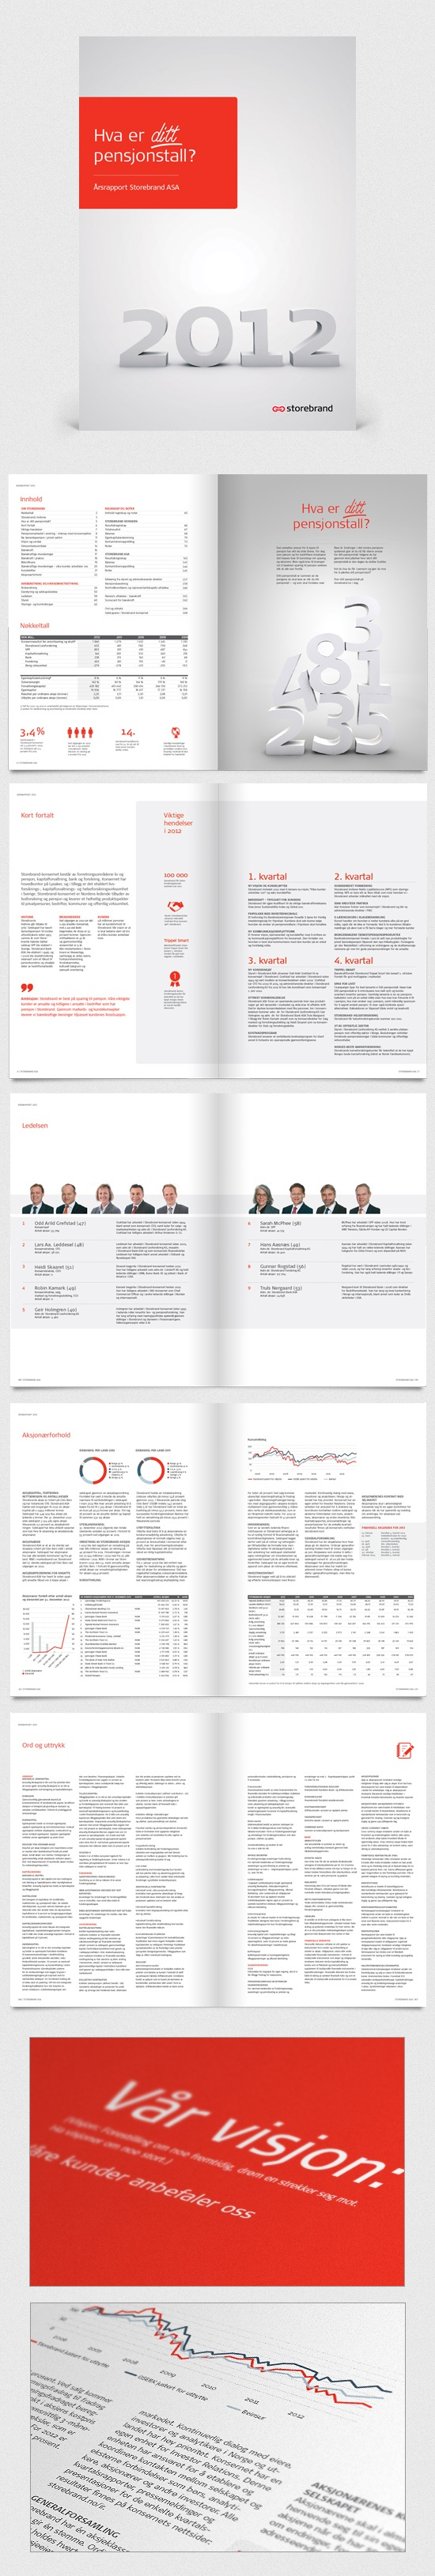 Norwegian Financial institution Storebrand Annual Report by Design Container